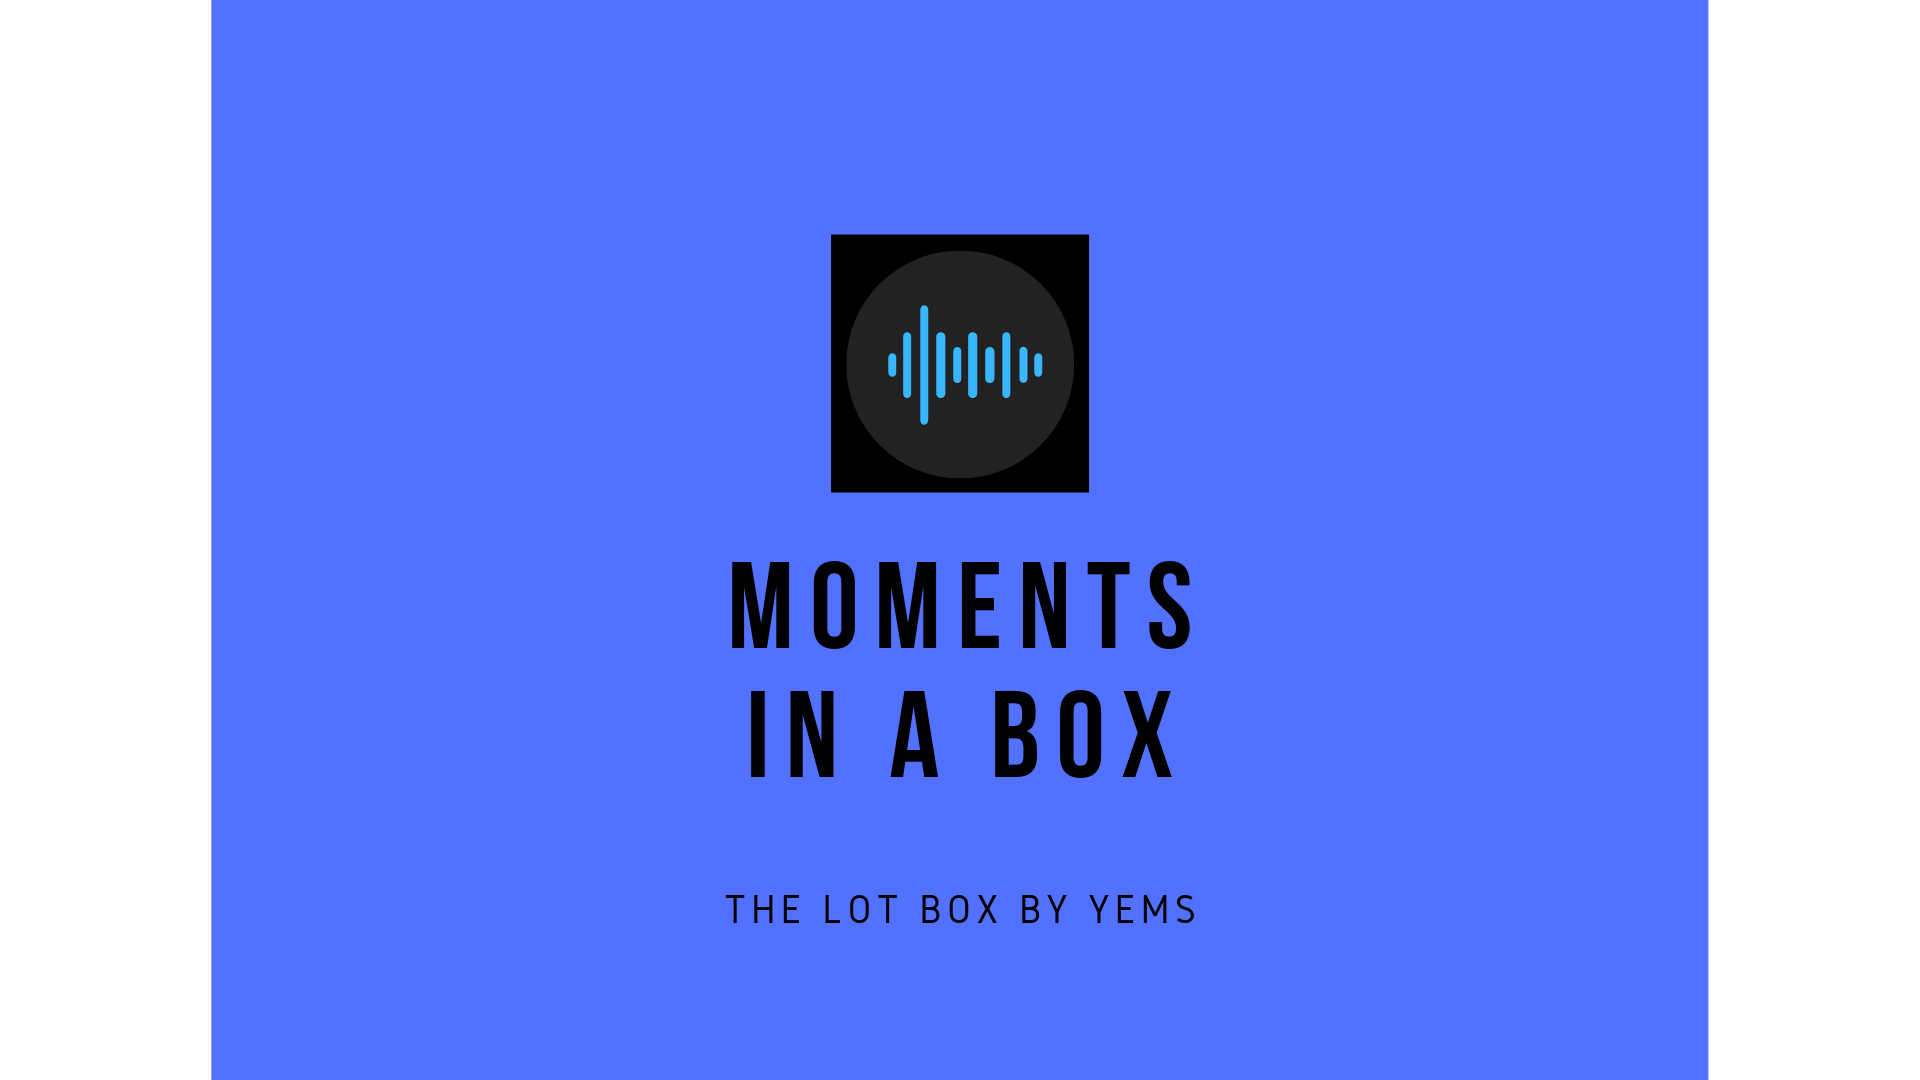 moments in a box. lot box by yems